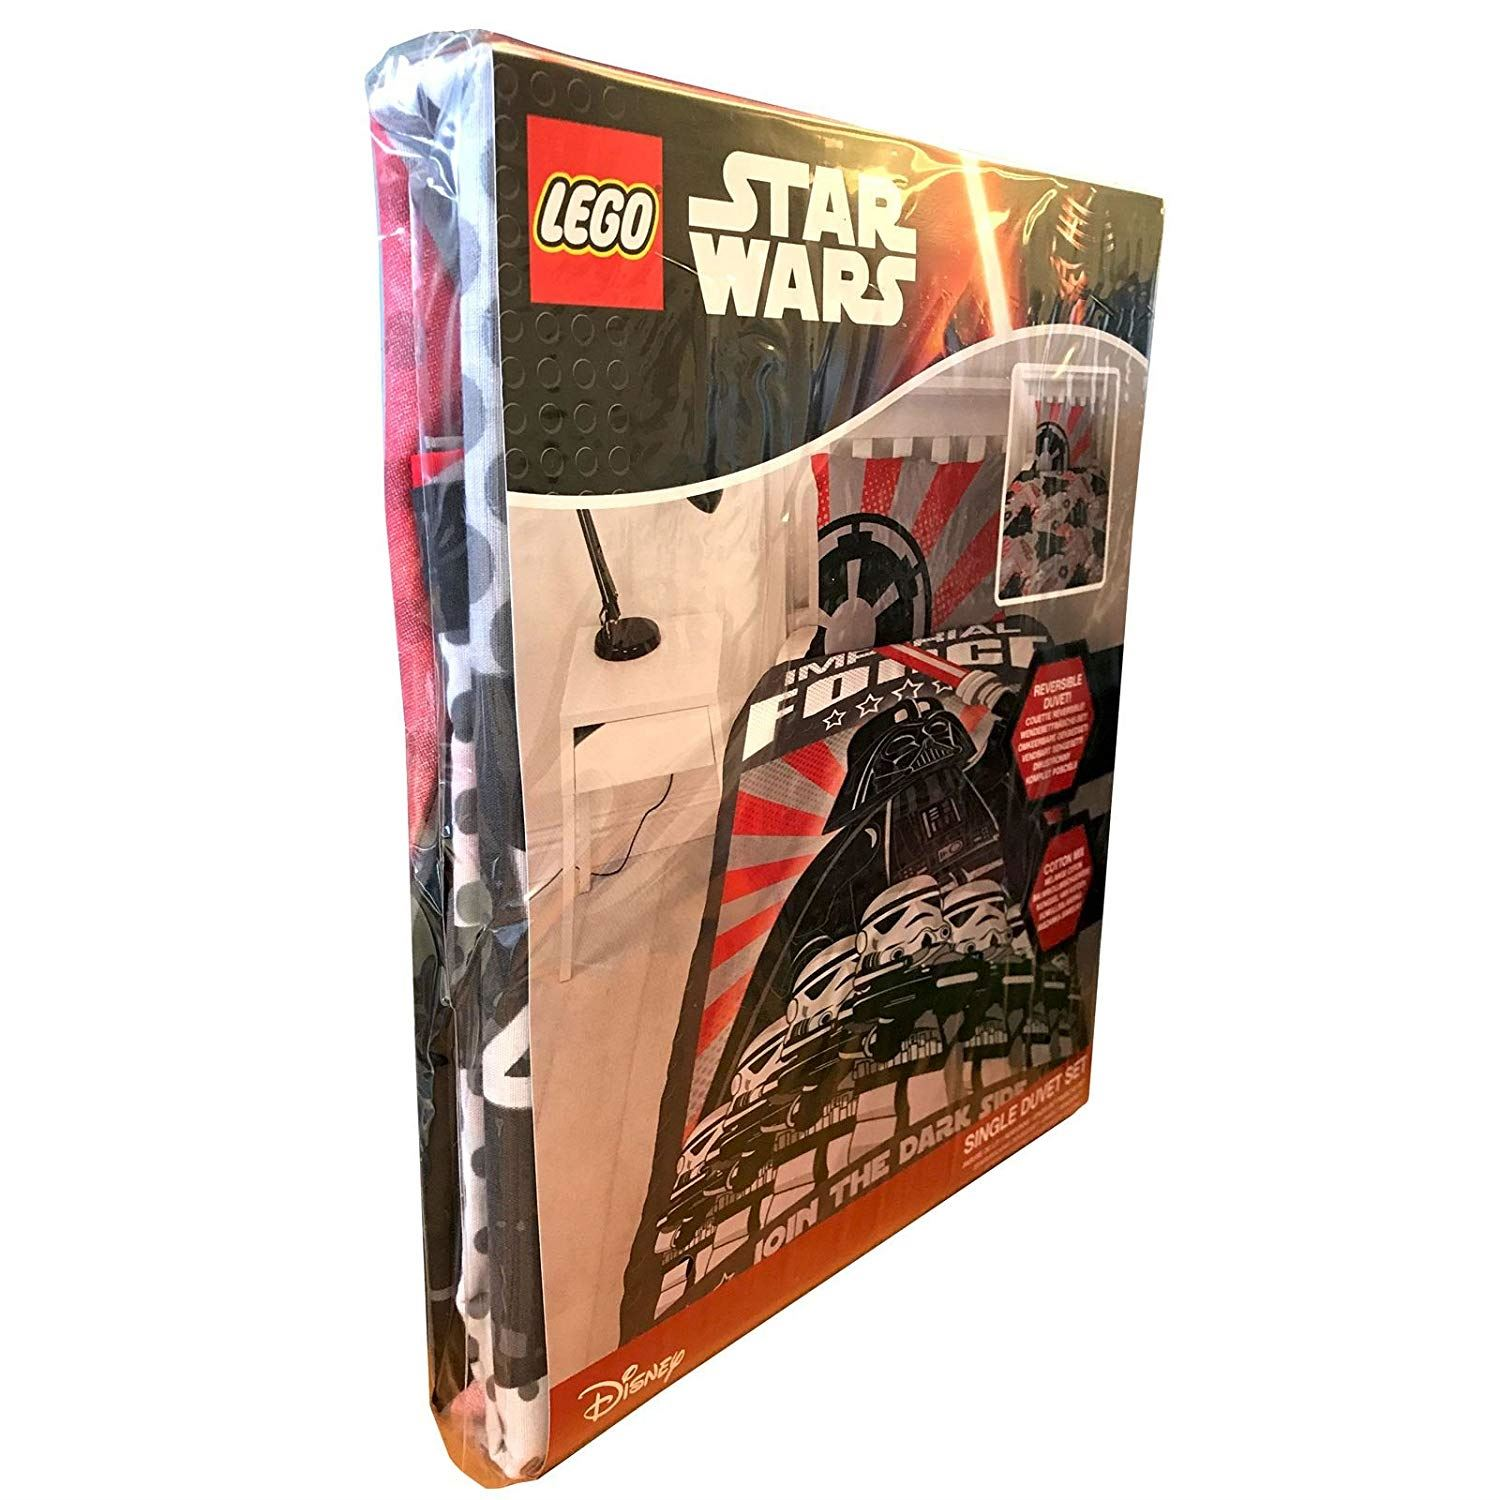 Official-Star-Wars-Licensed-Duvet-Covers-Single-Double-Jedi-Darth-Vader-Lego thumbnail 9